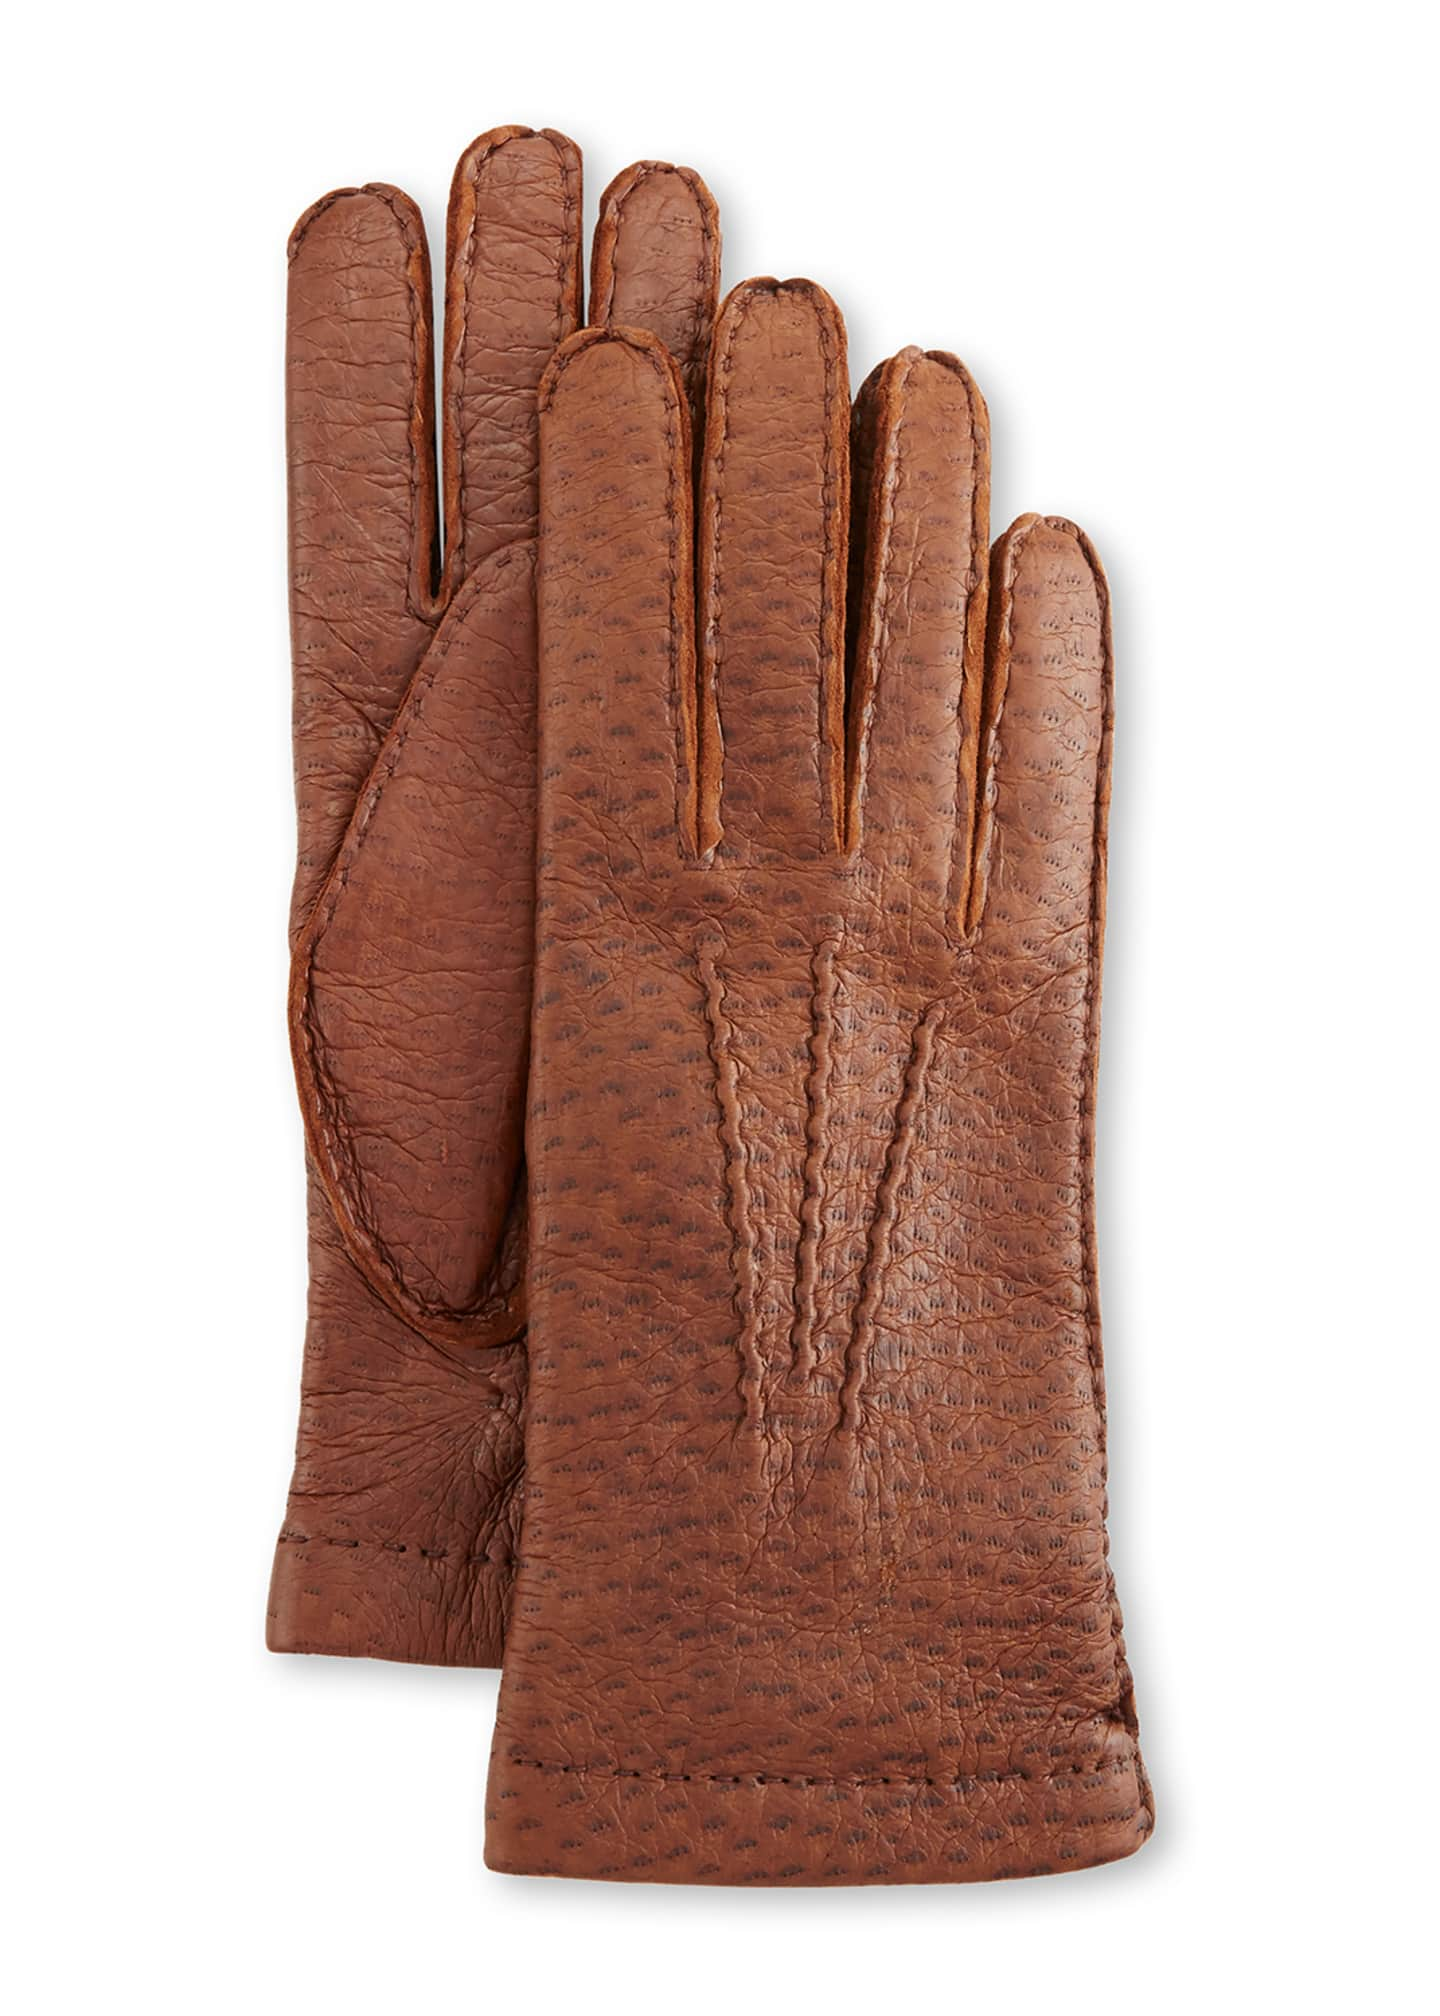 Hestra Gloves Peccary Hand-Sewn Leather Cashmere-Lined Gloves